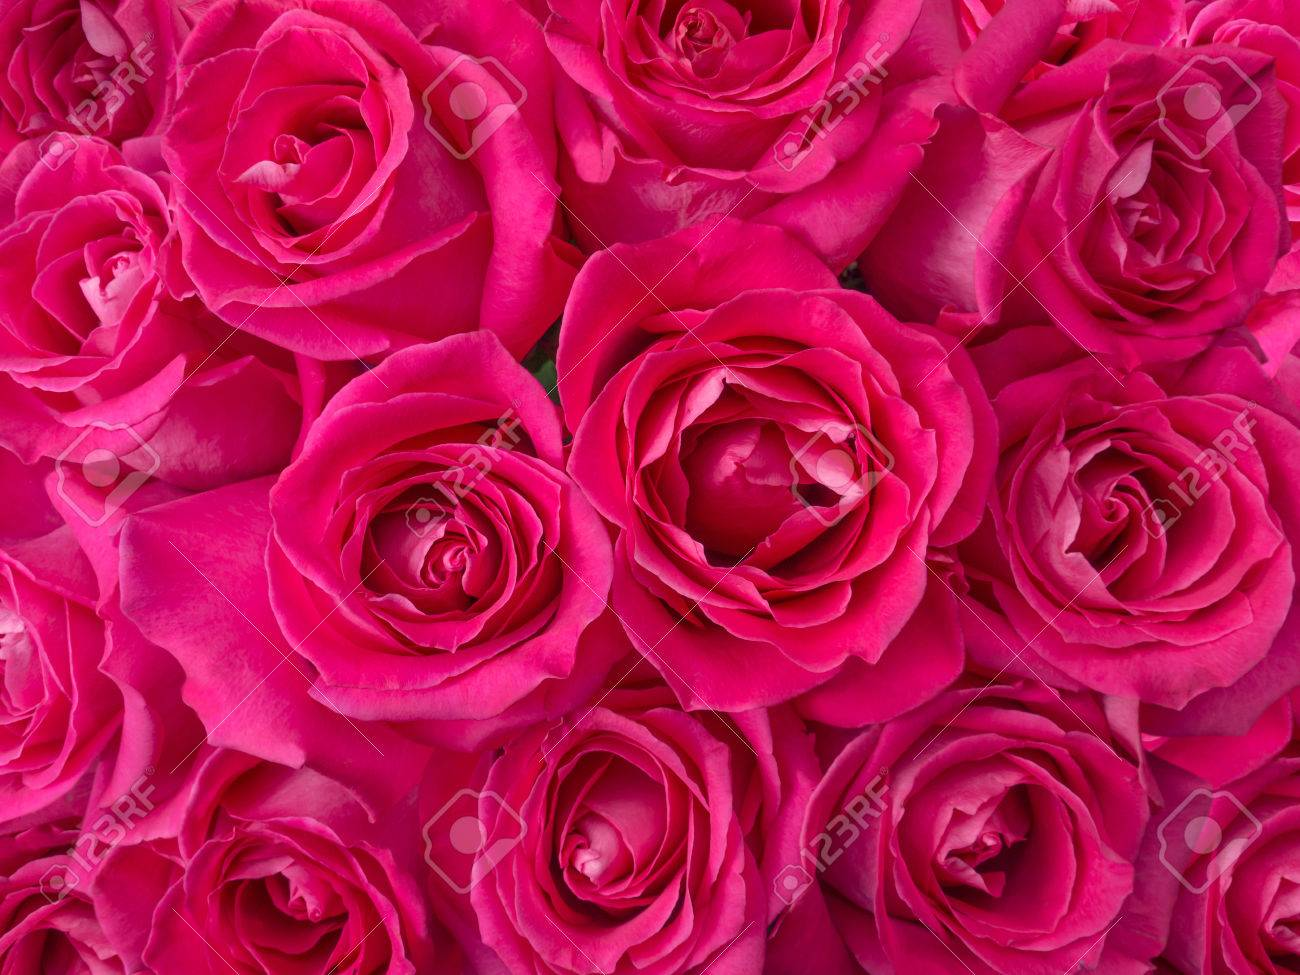 Romantic Deep Pink Roses Bouquet Background Stock Photo Picture And Royalty Free Image Image 47876148